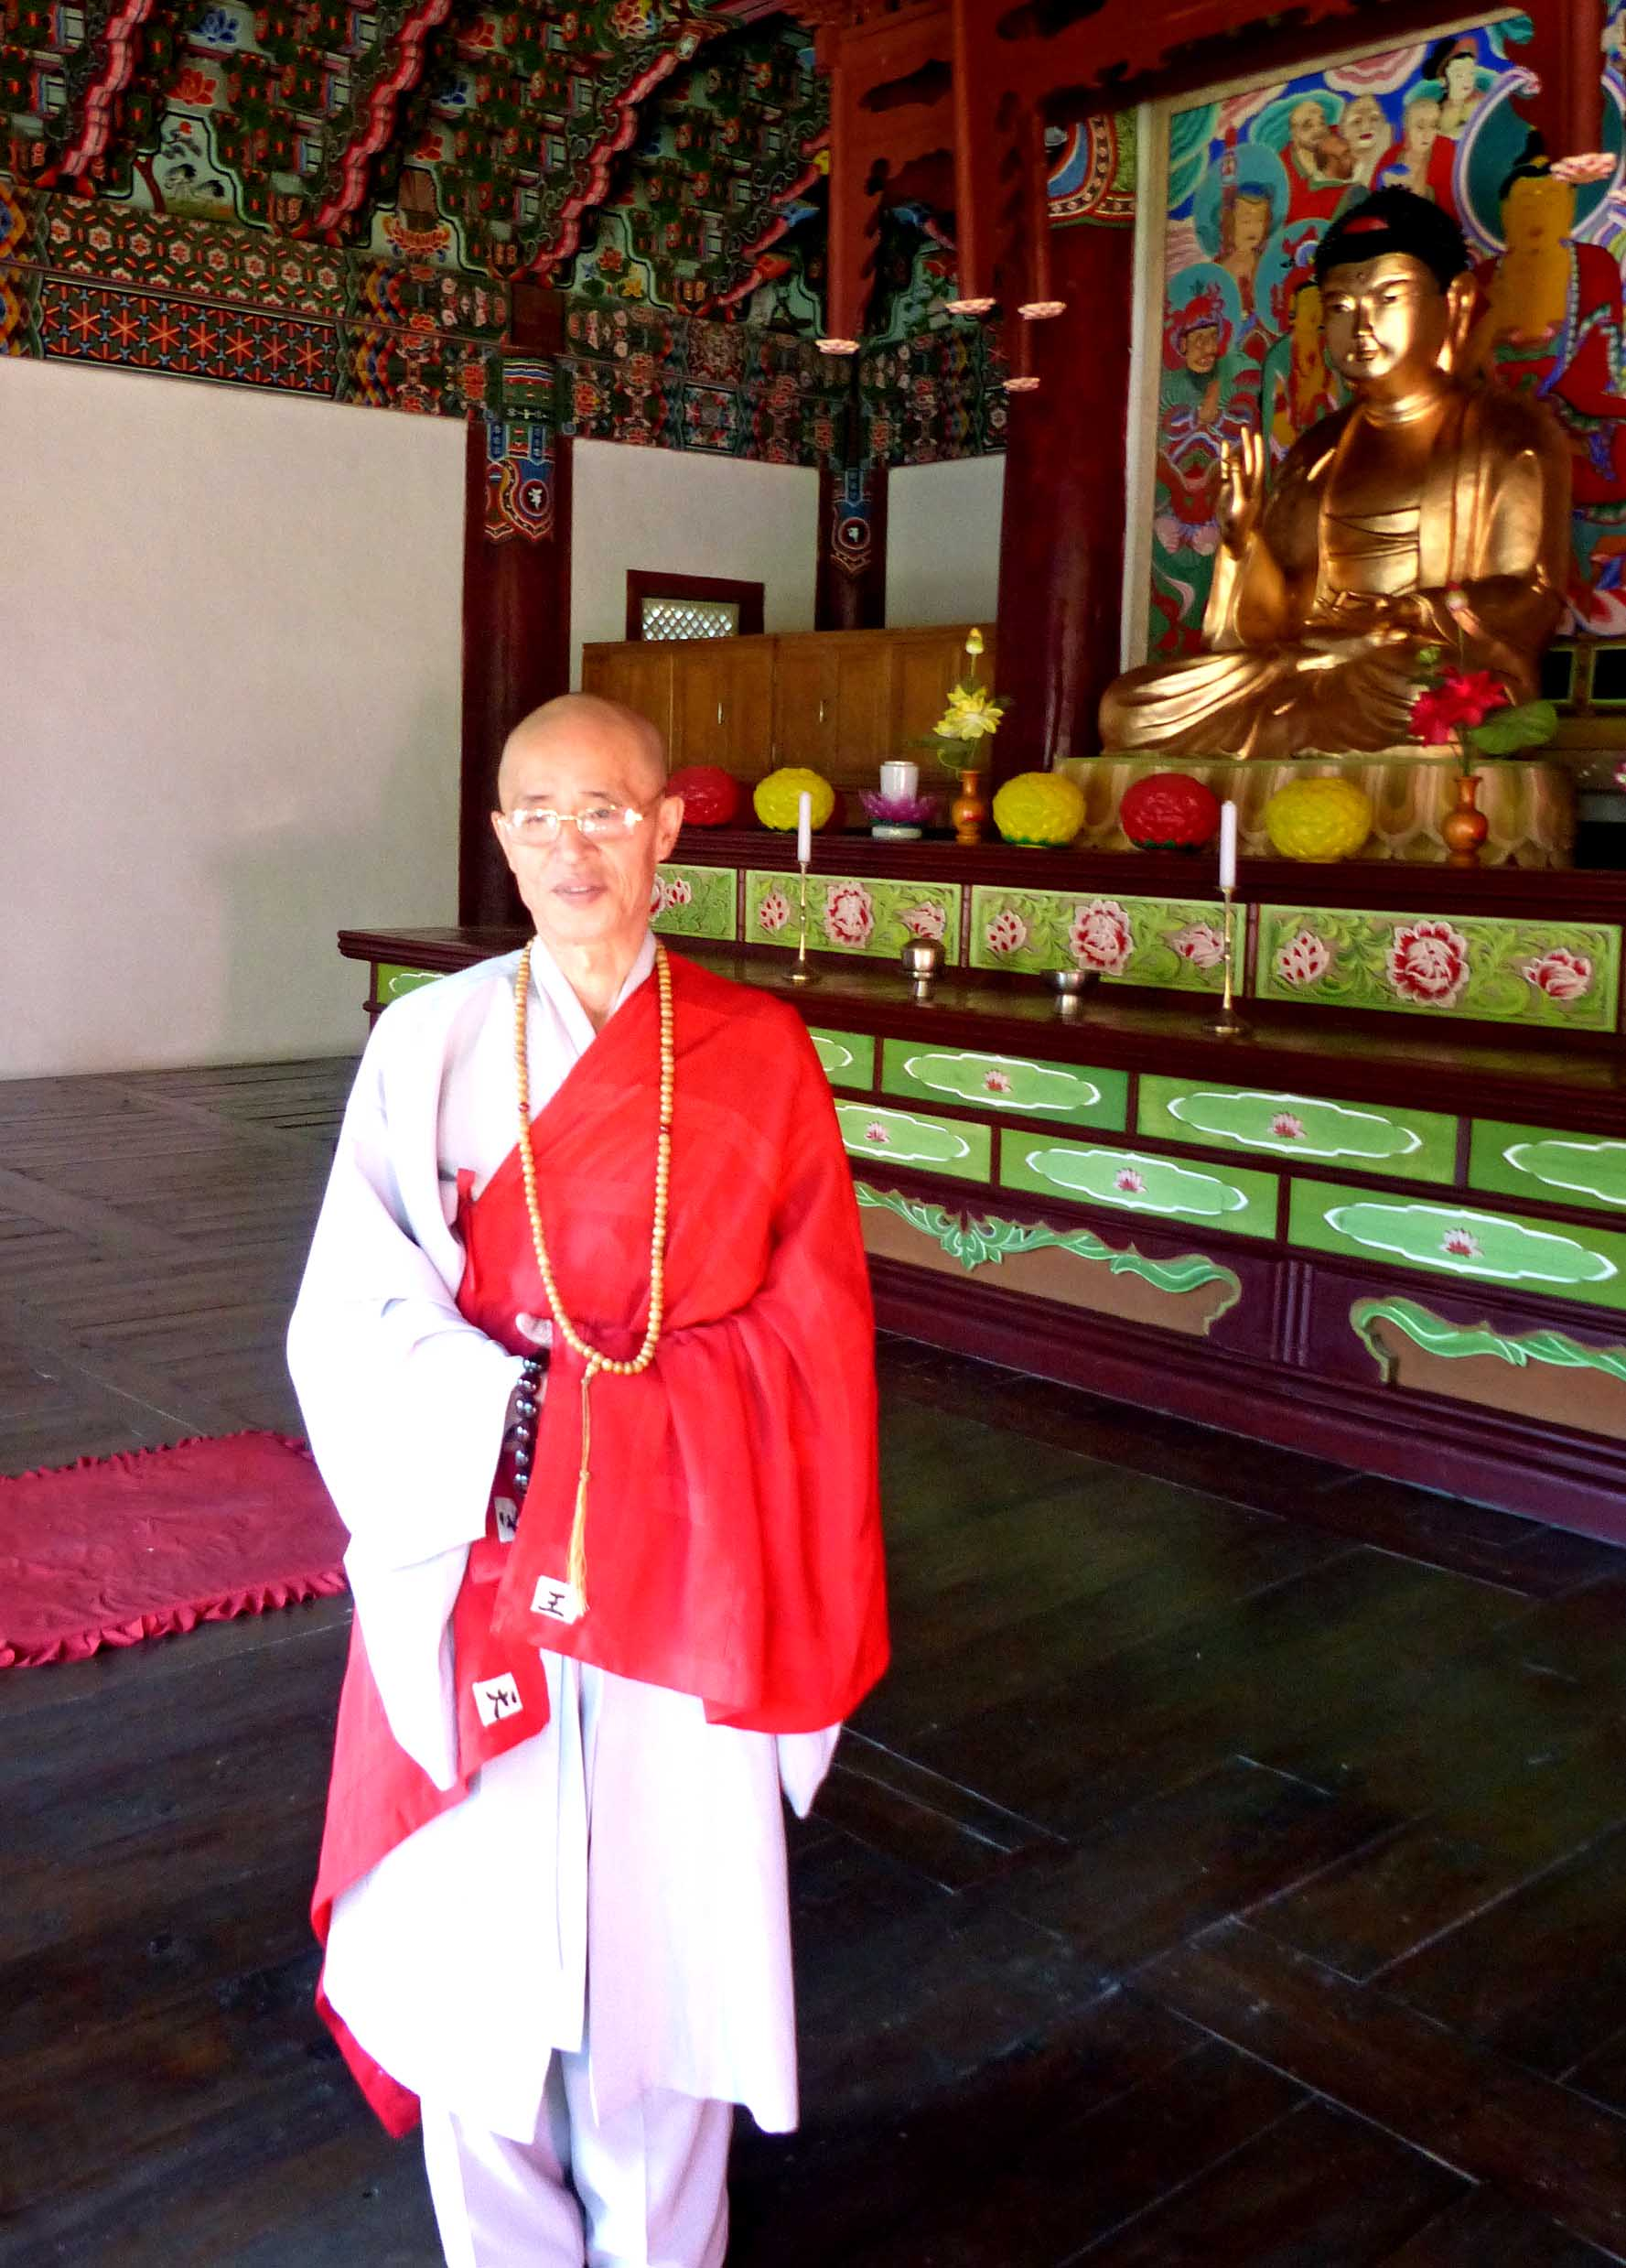 Buddhist monk in front of altar with gold Buddha